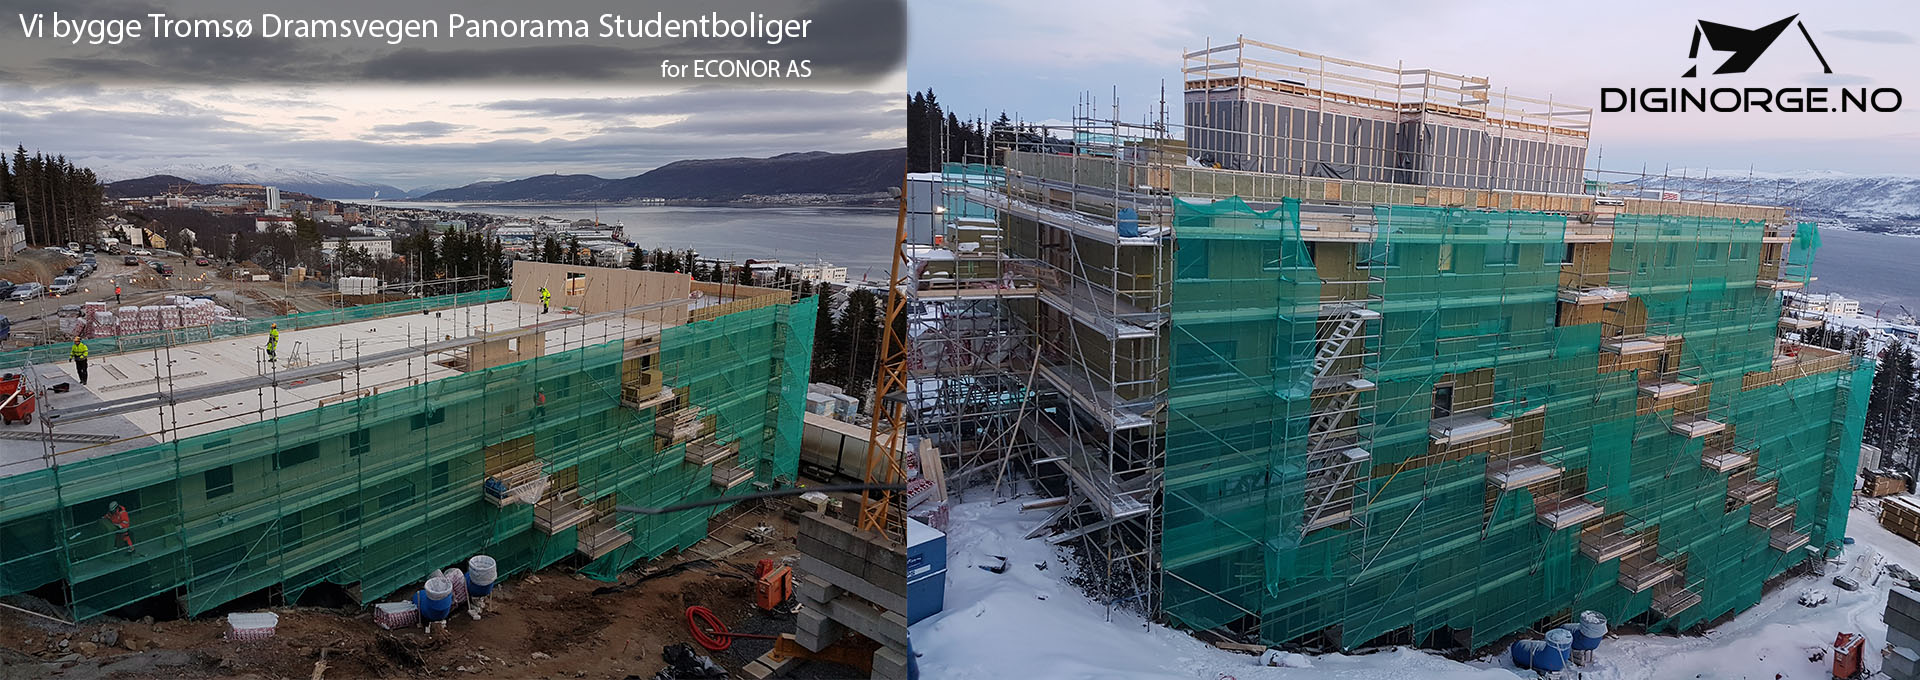 Vi bygge Dramsvegen Panorama Studentboliger i Tromsø (for ECONOR AS)